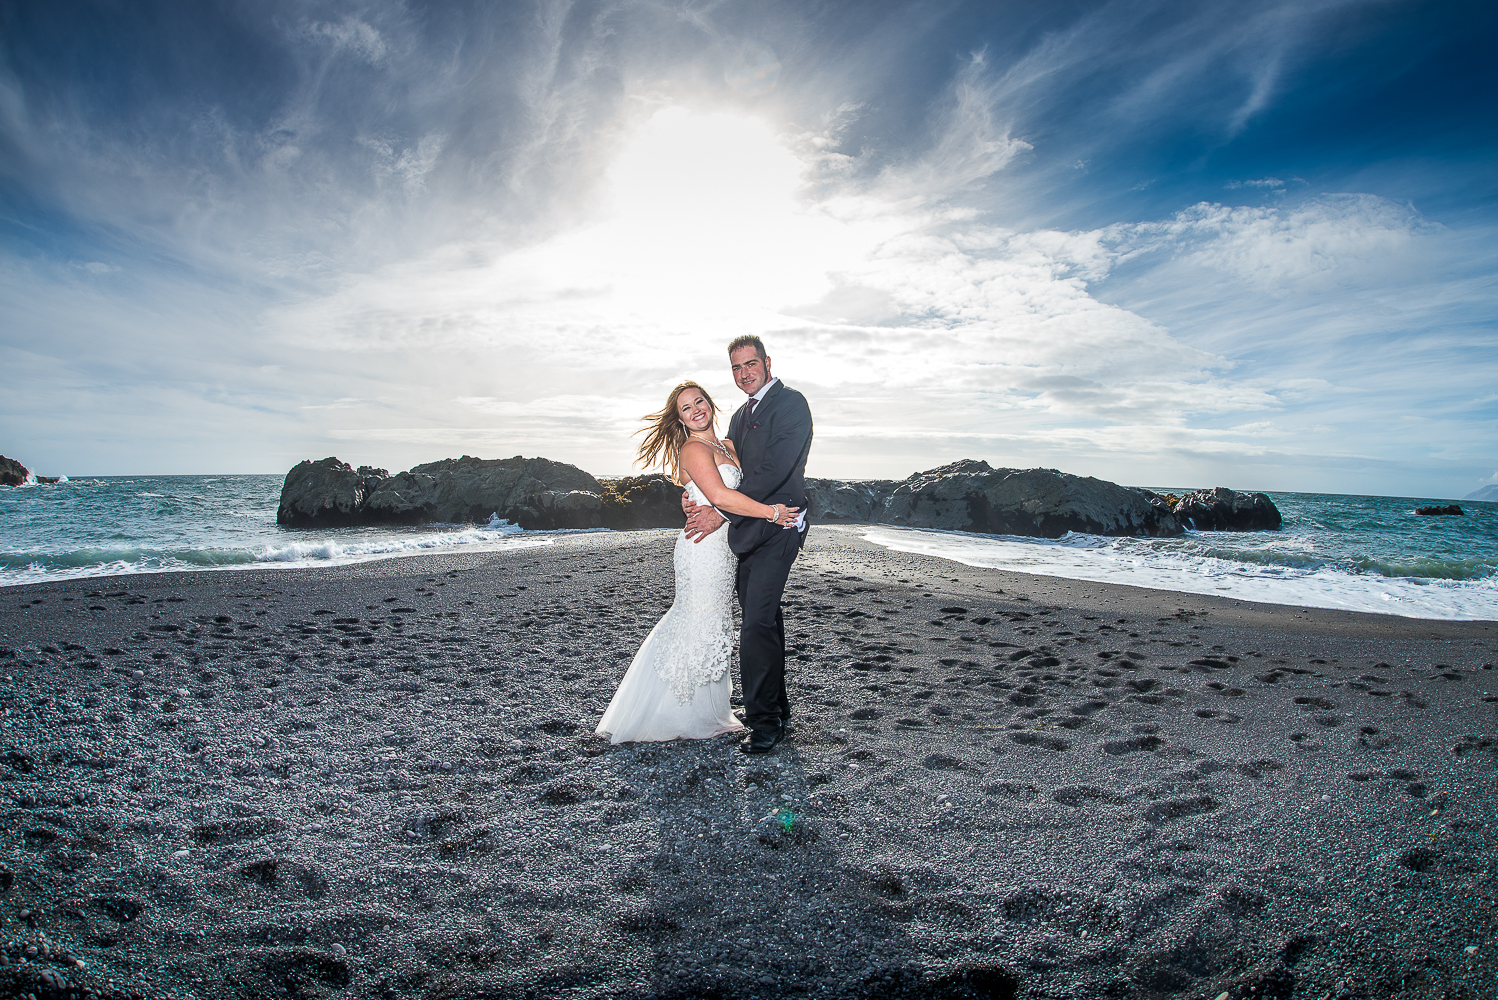 Shelter Cove-Intimate Destination beach Wedding-Parky's Pics Photography-Humboldt County_-54.jpg